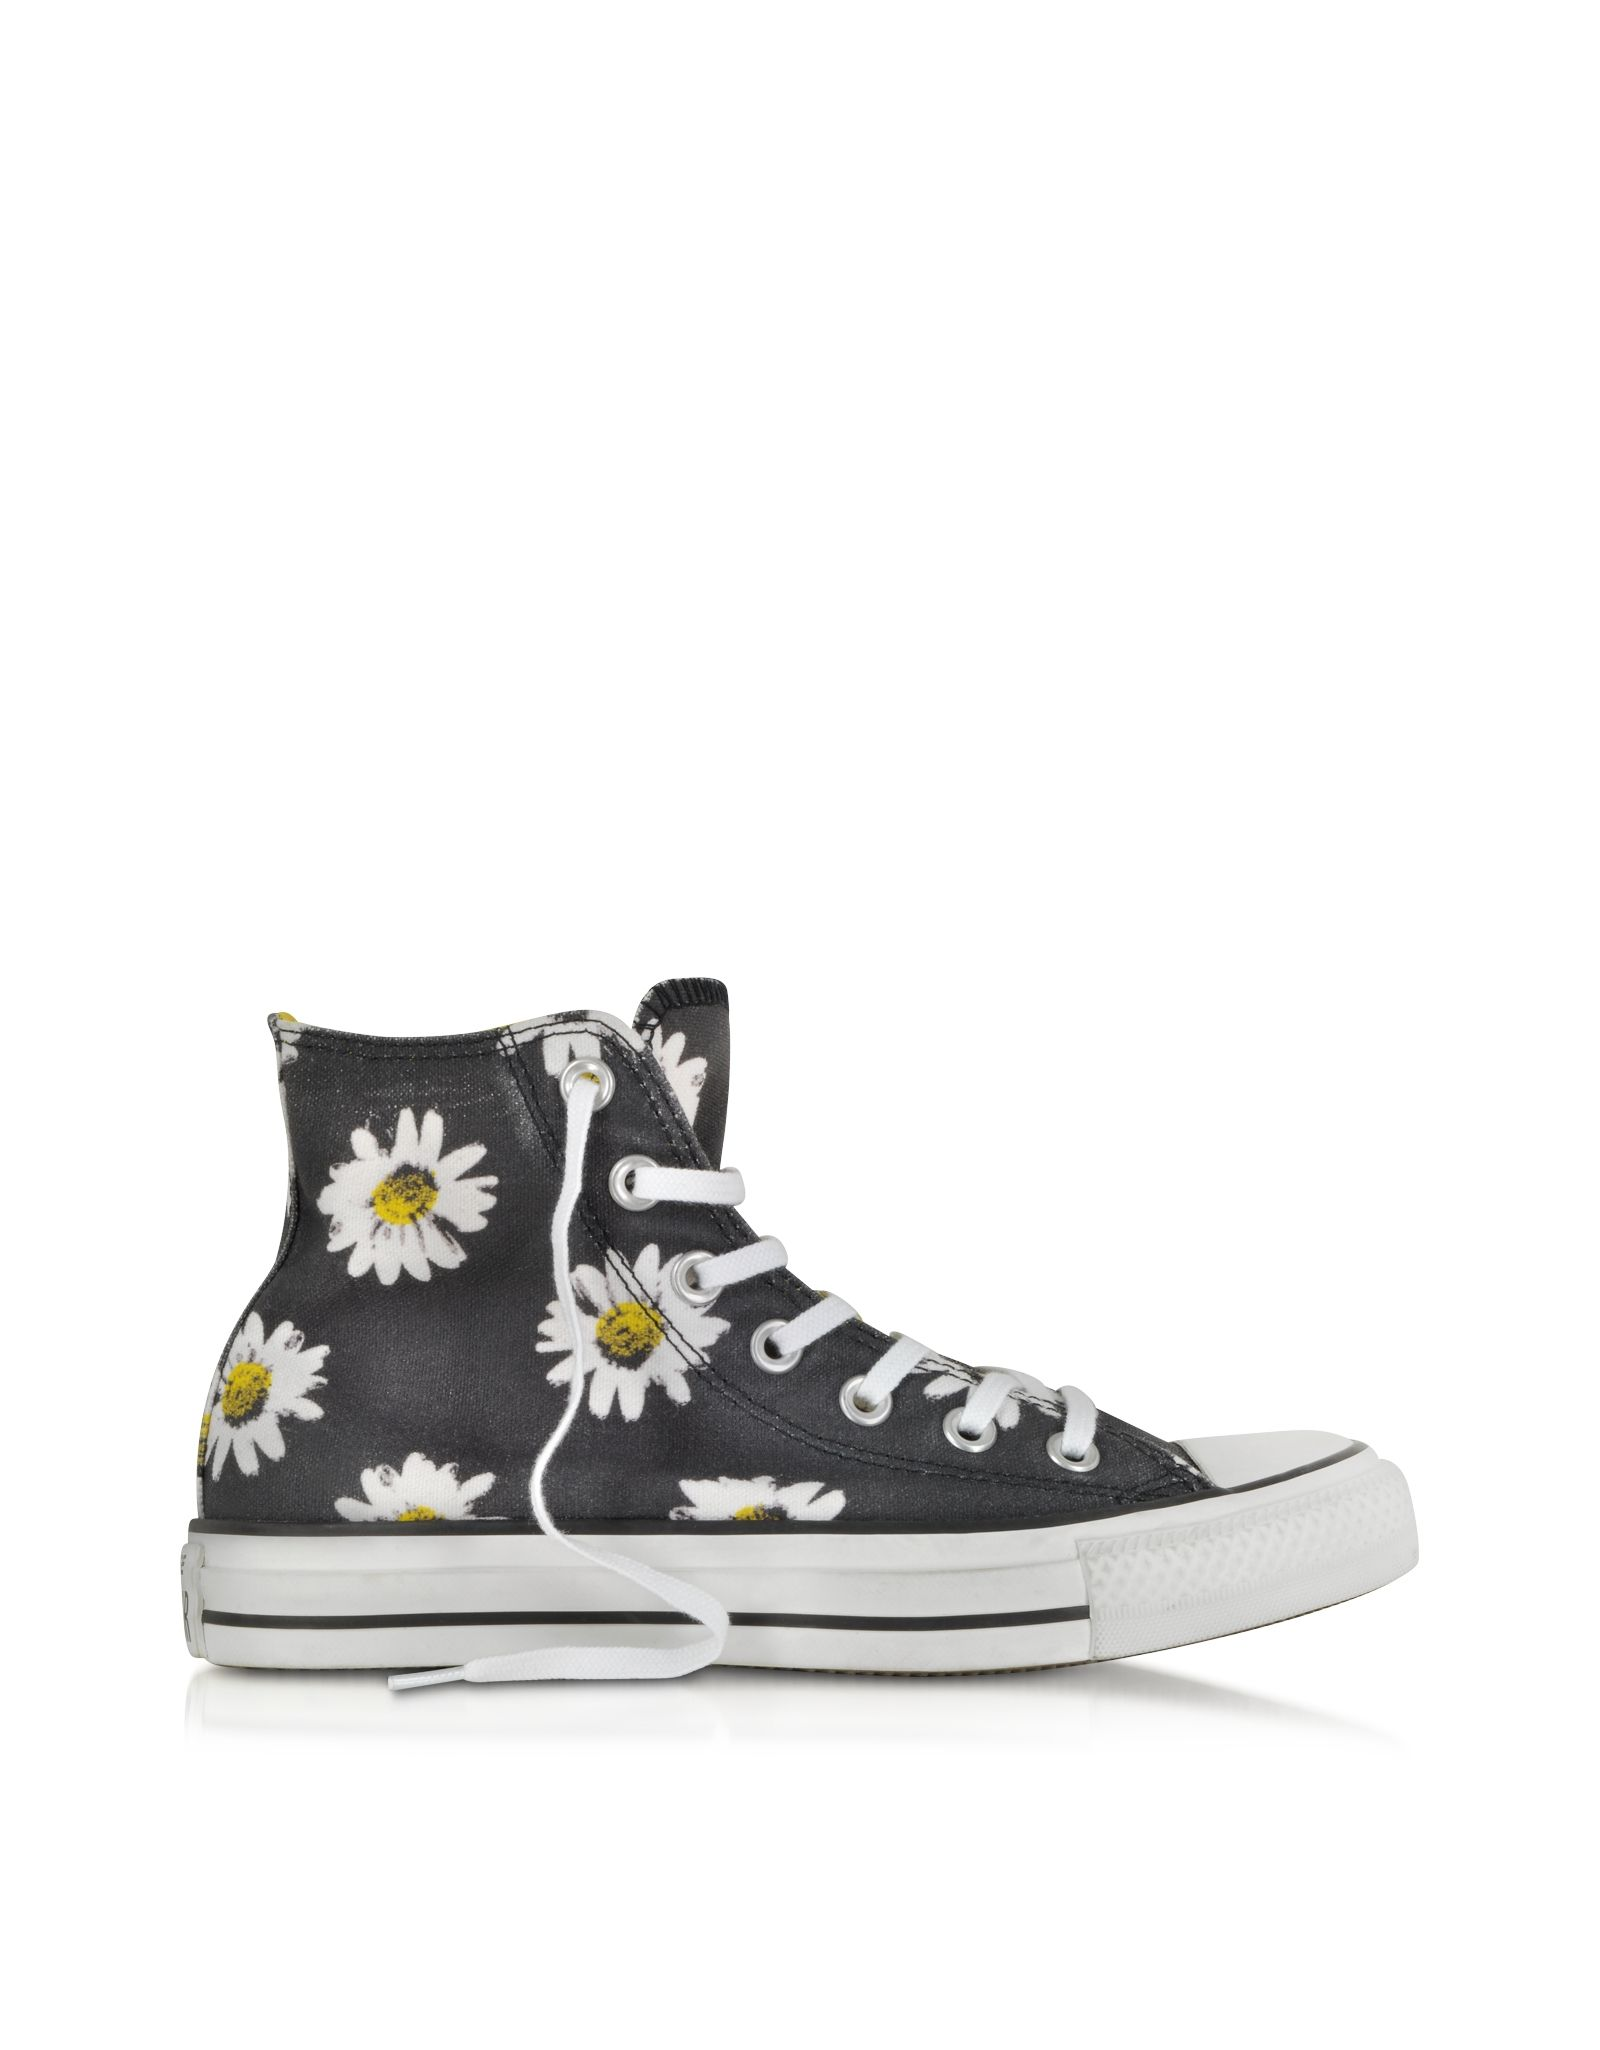 6f2035ca6dc9 Converse Limited Edition Chuck Taylor All Star Black and Citrus Daisy  Printed Canvas High Top Sneaker 3.5 (5.5 WOMENS US